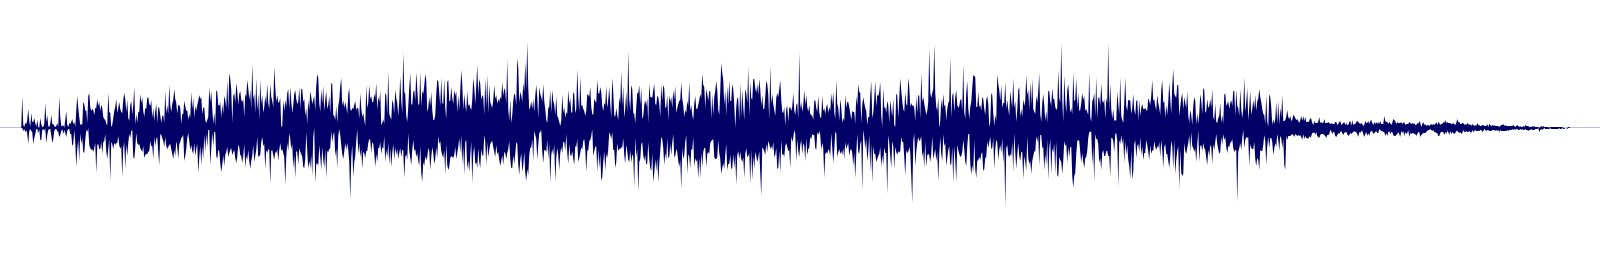 waveform of track #143663